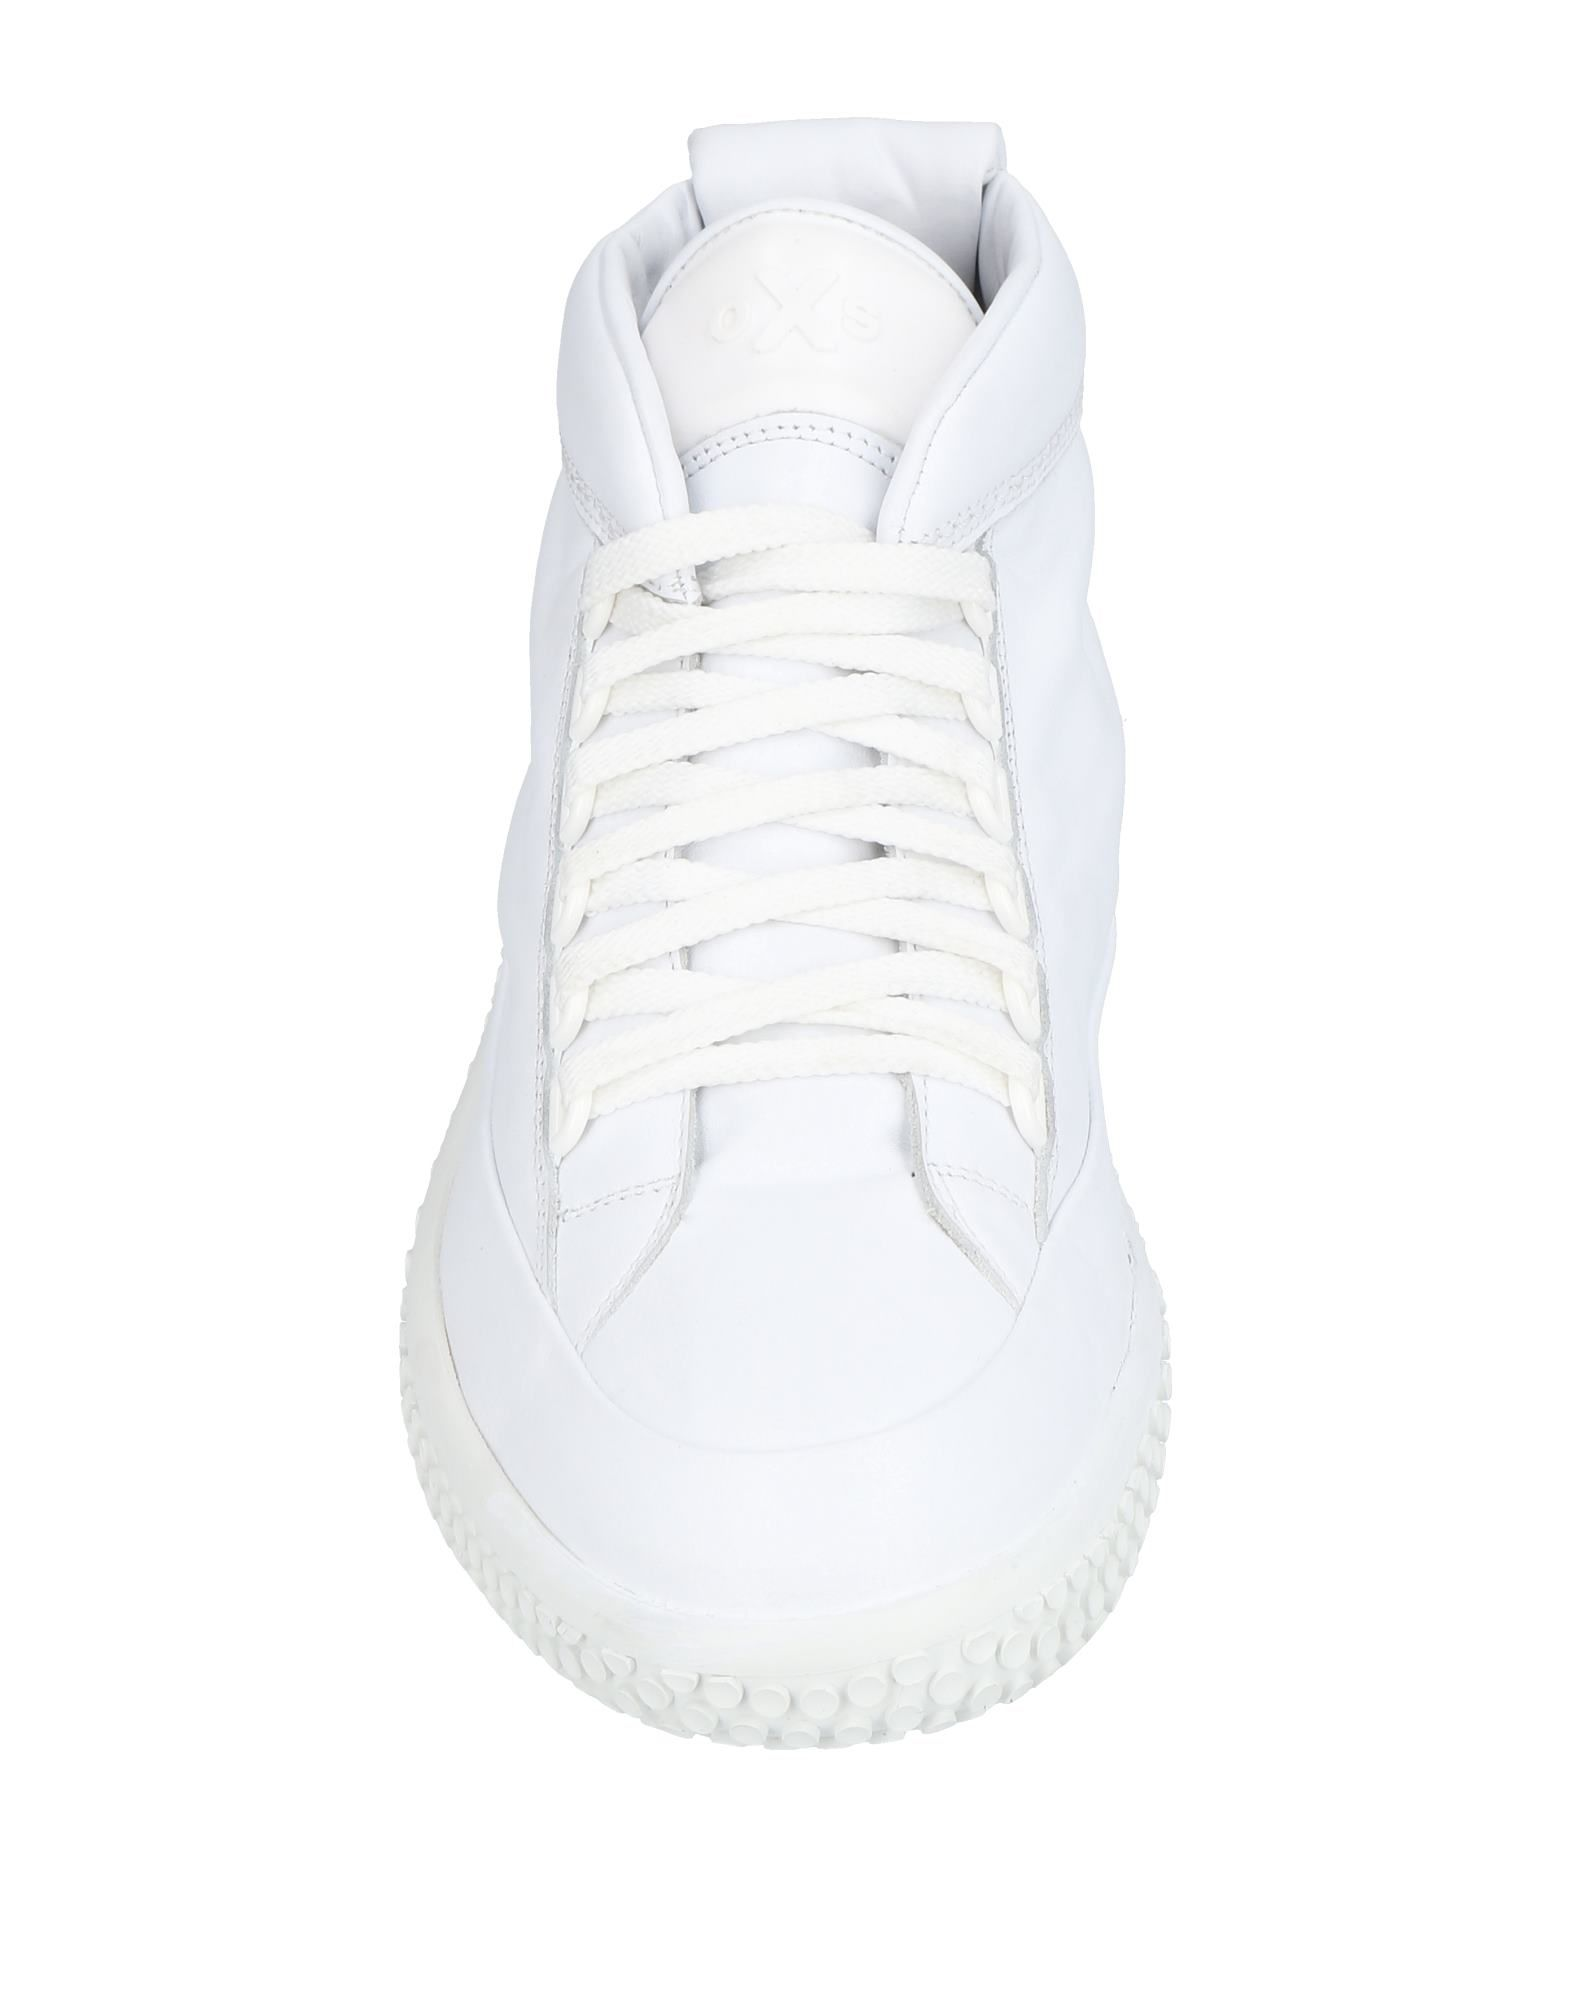 Sneakers O.X.S. Homme - Sneakers O.X.S. sur